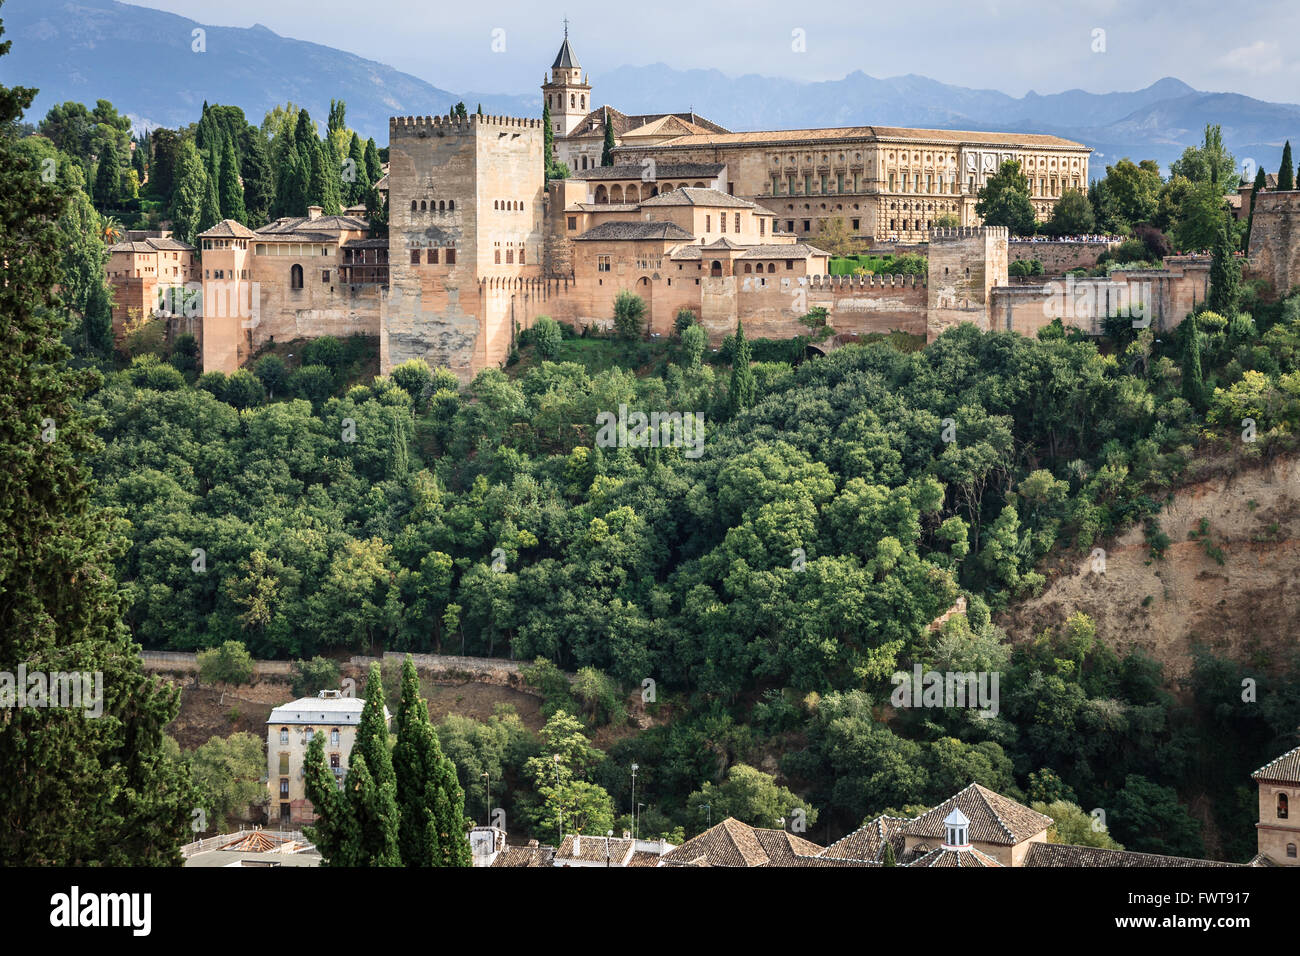 View of the famous Alhambra castle in Granada, Spain. - Stock Image